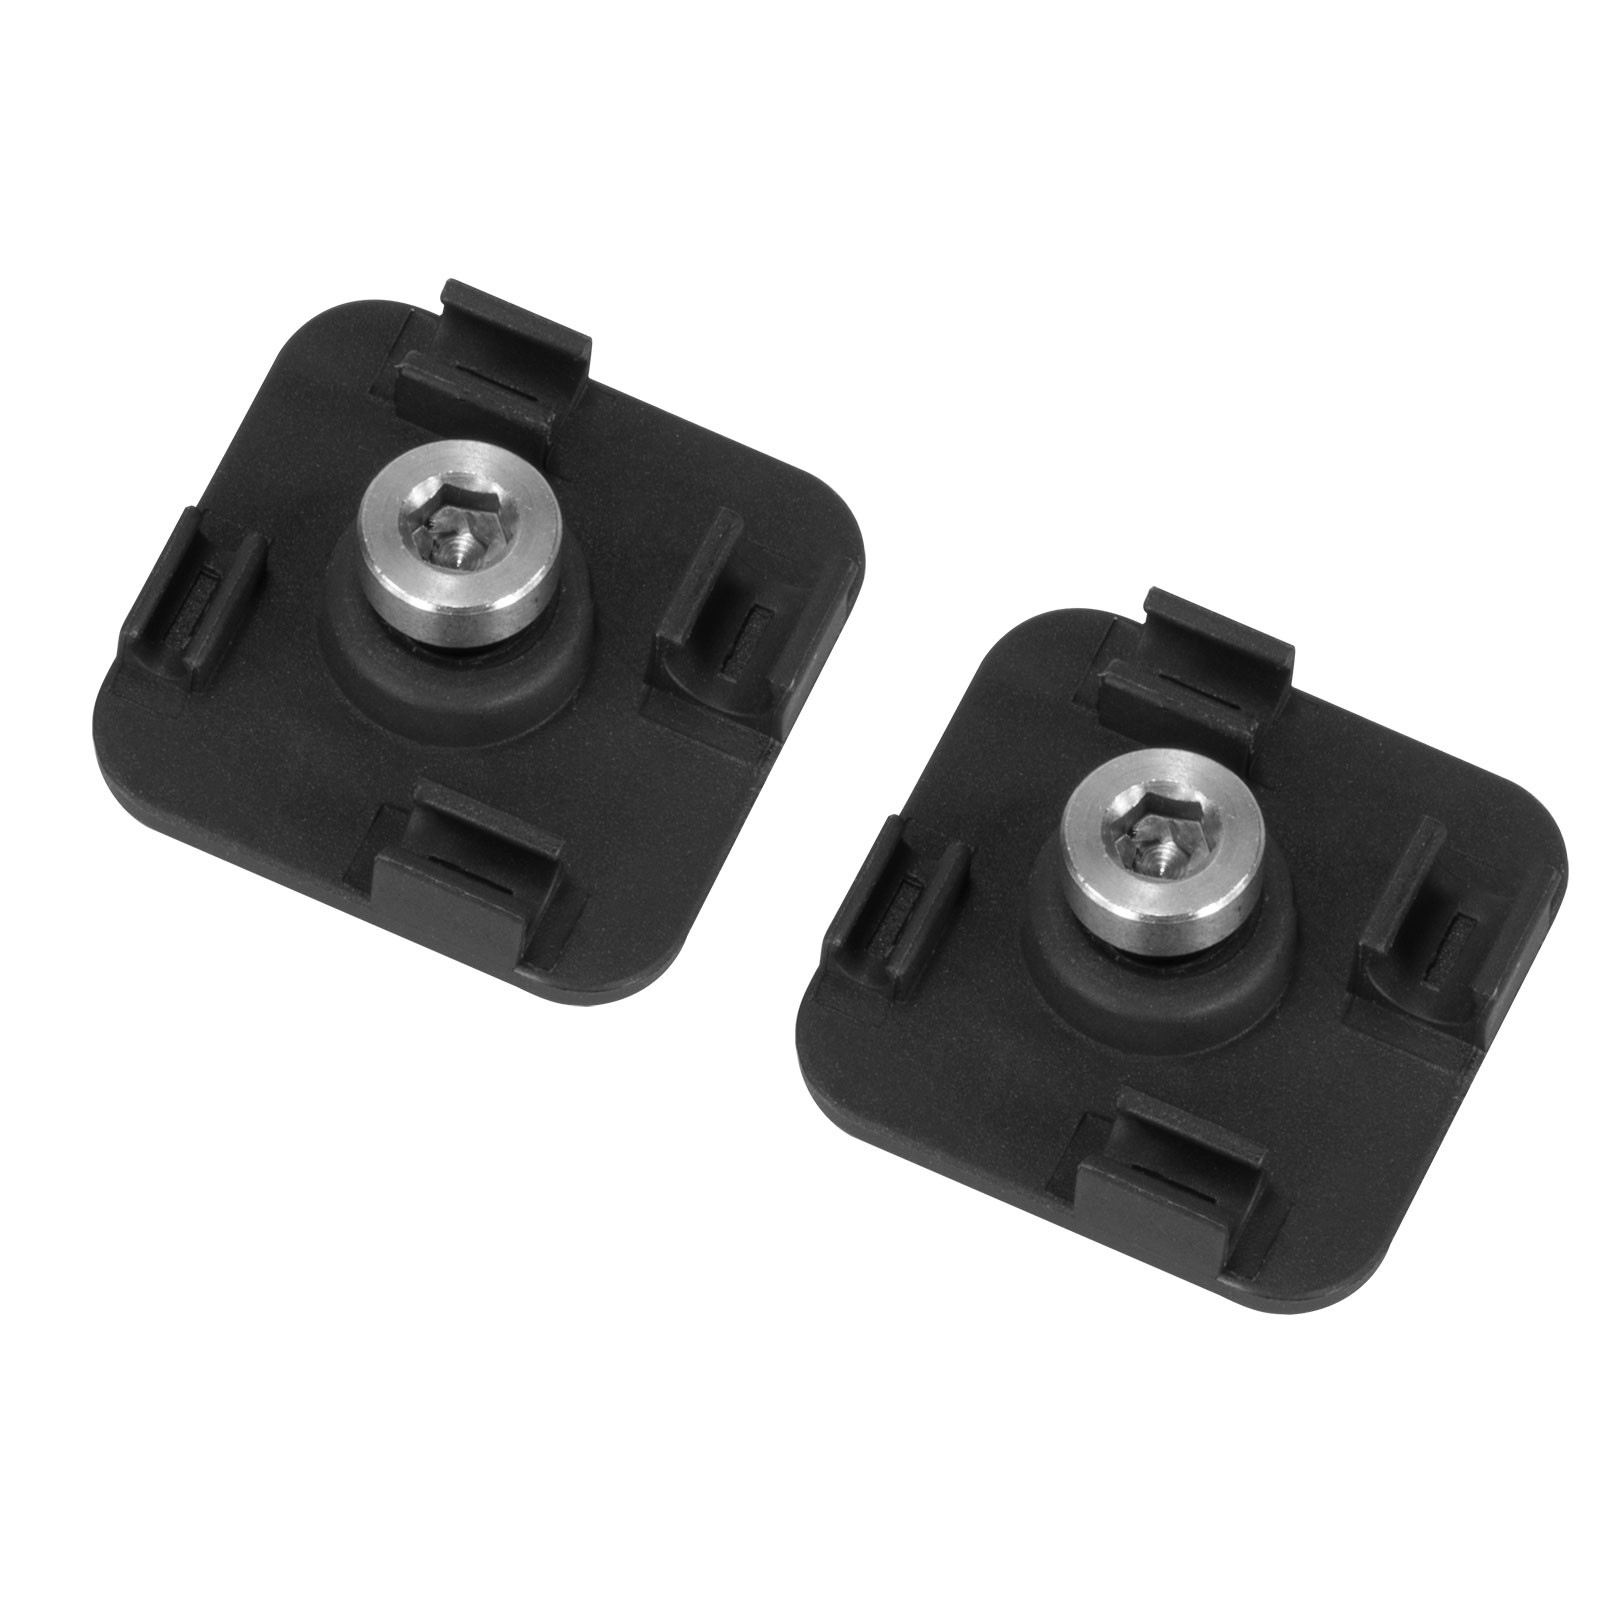 SmallRig Mini Cable Clamp for Tethering Cables (2 pcs) BSC2335